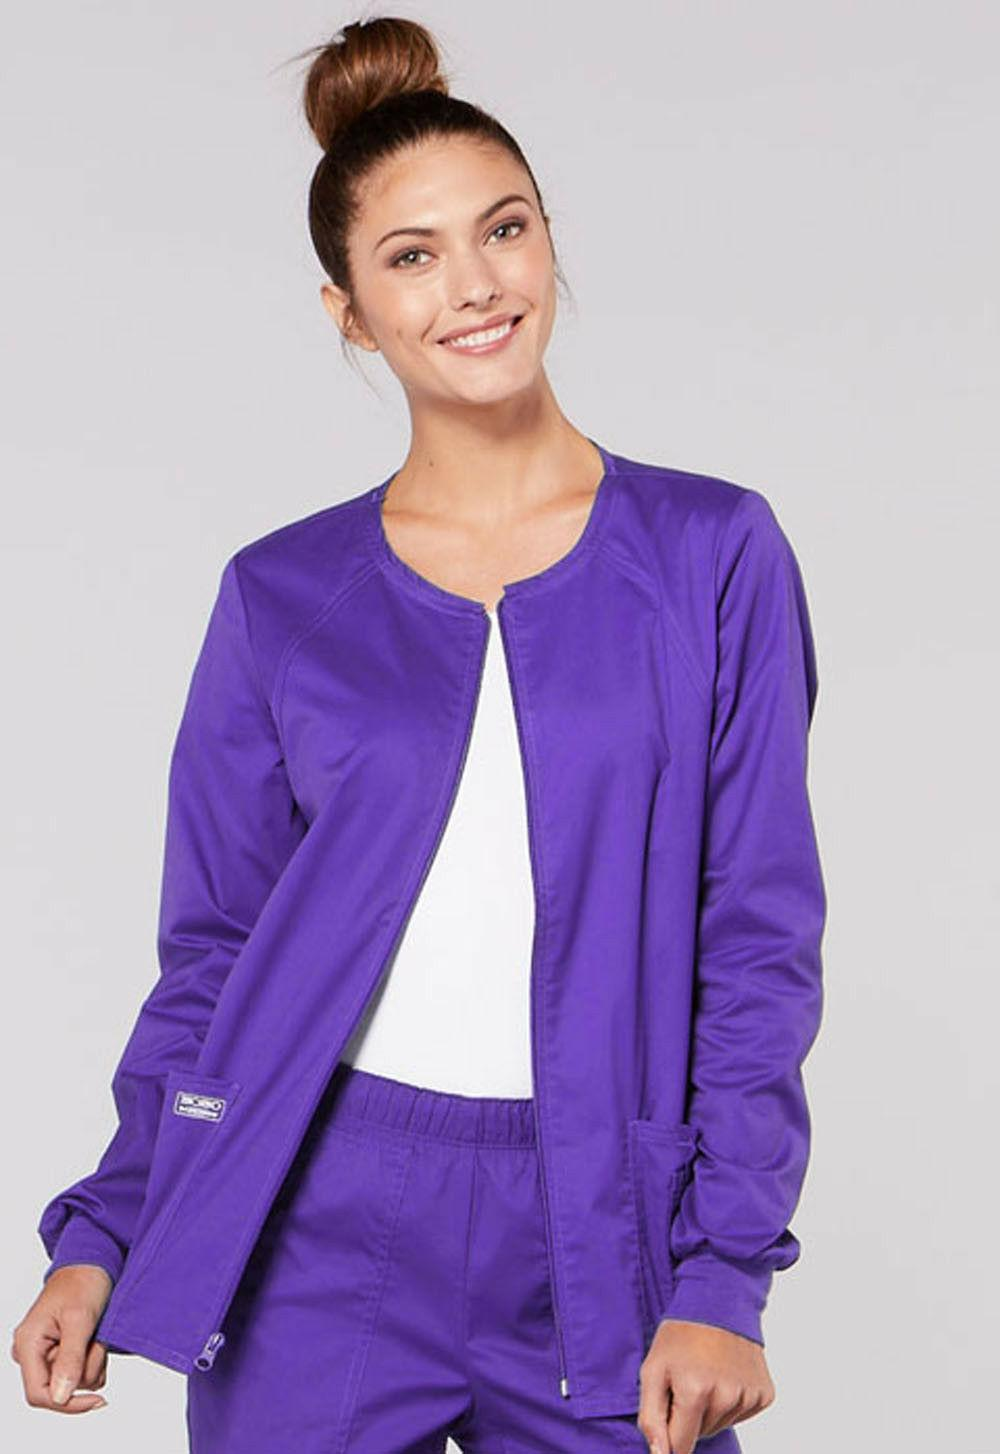 Grape Cherokee Scrubs Workwear Core Stretch Warm Up Jacket 4